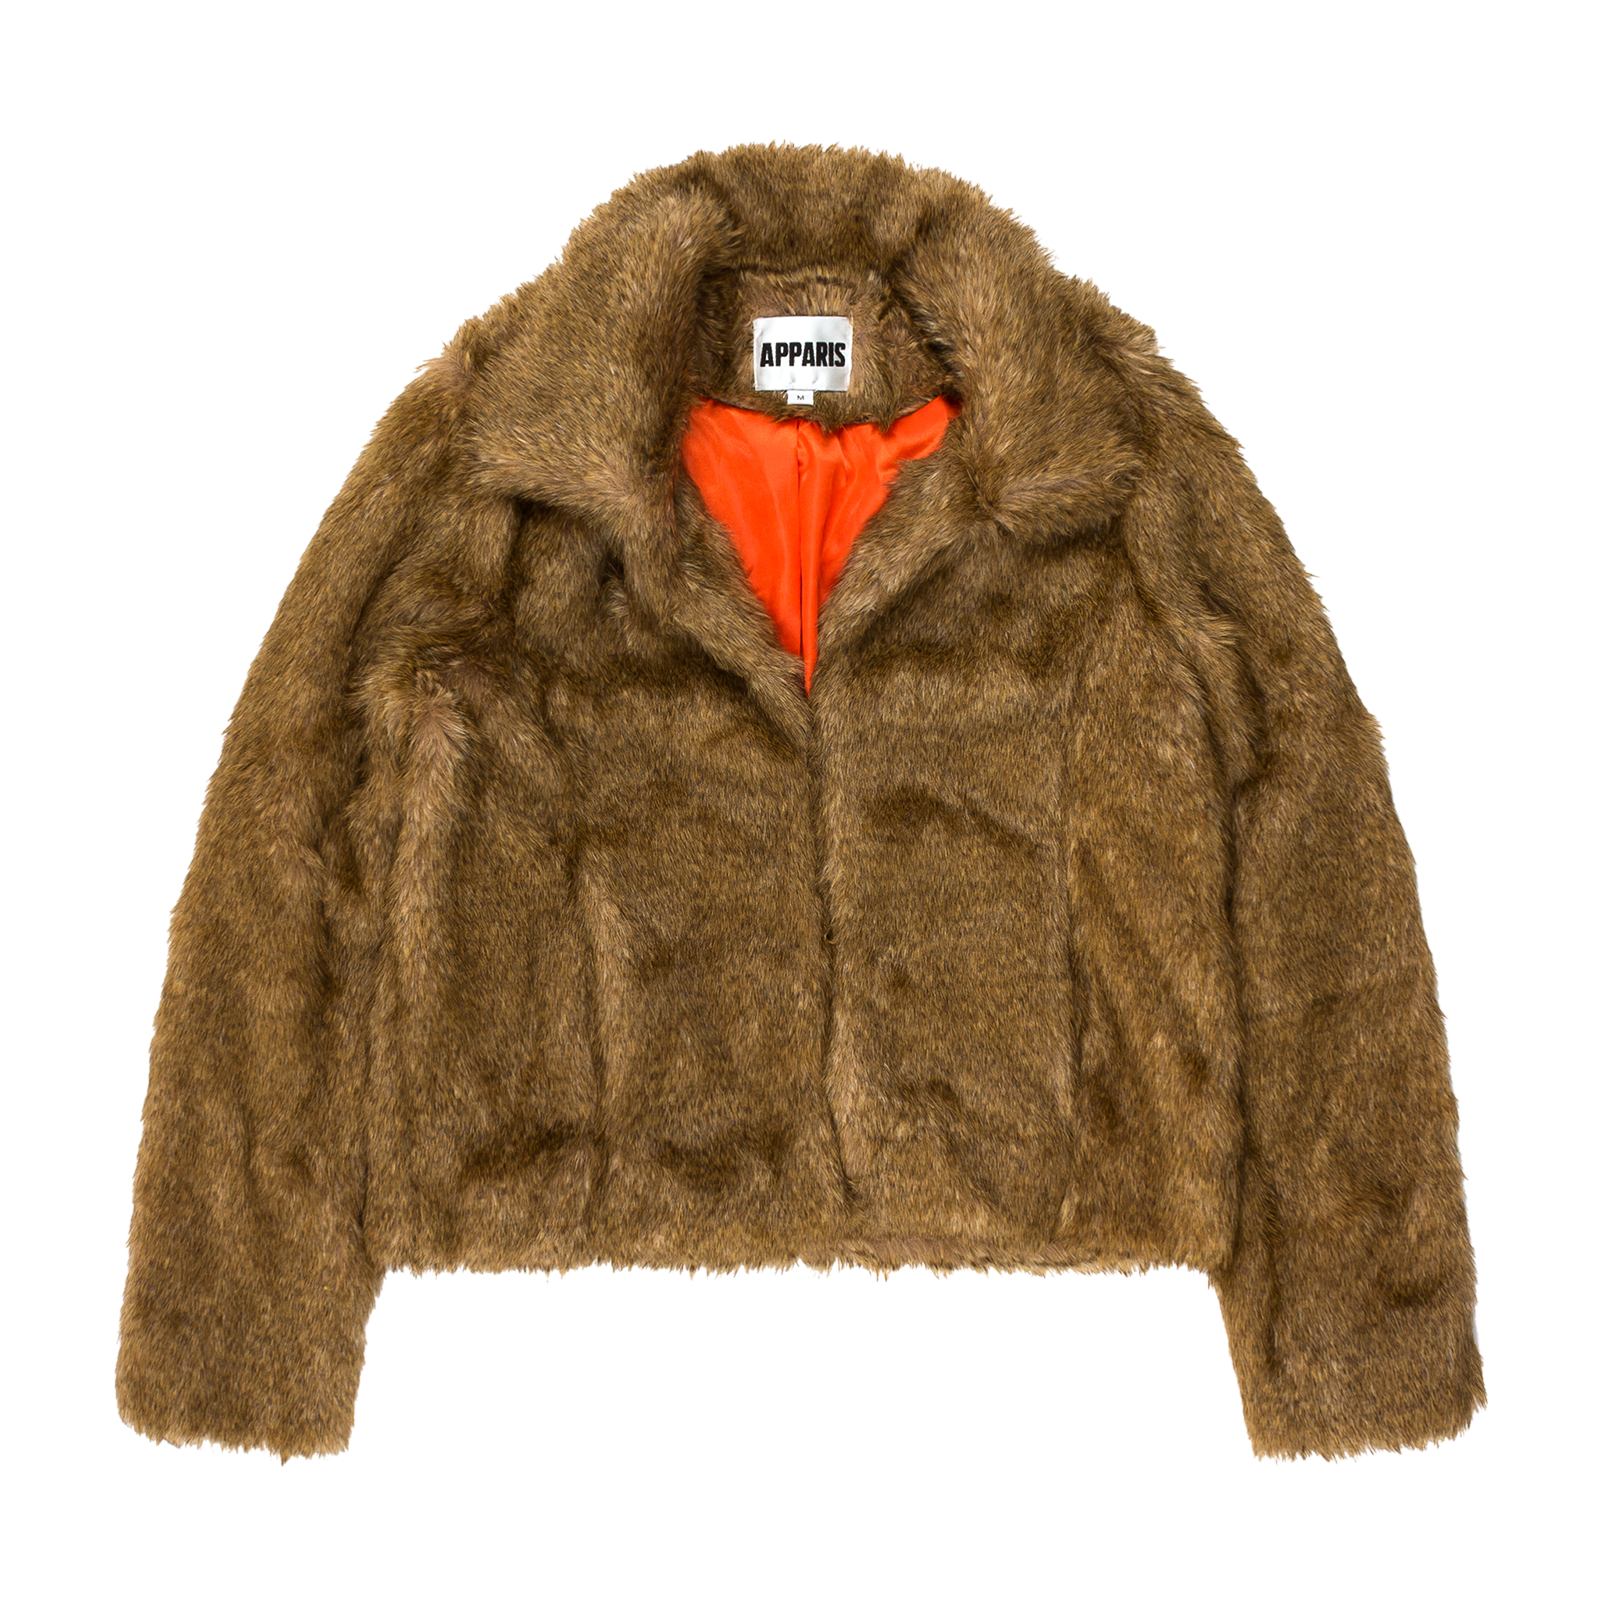 Fur jacket product image